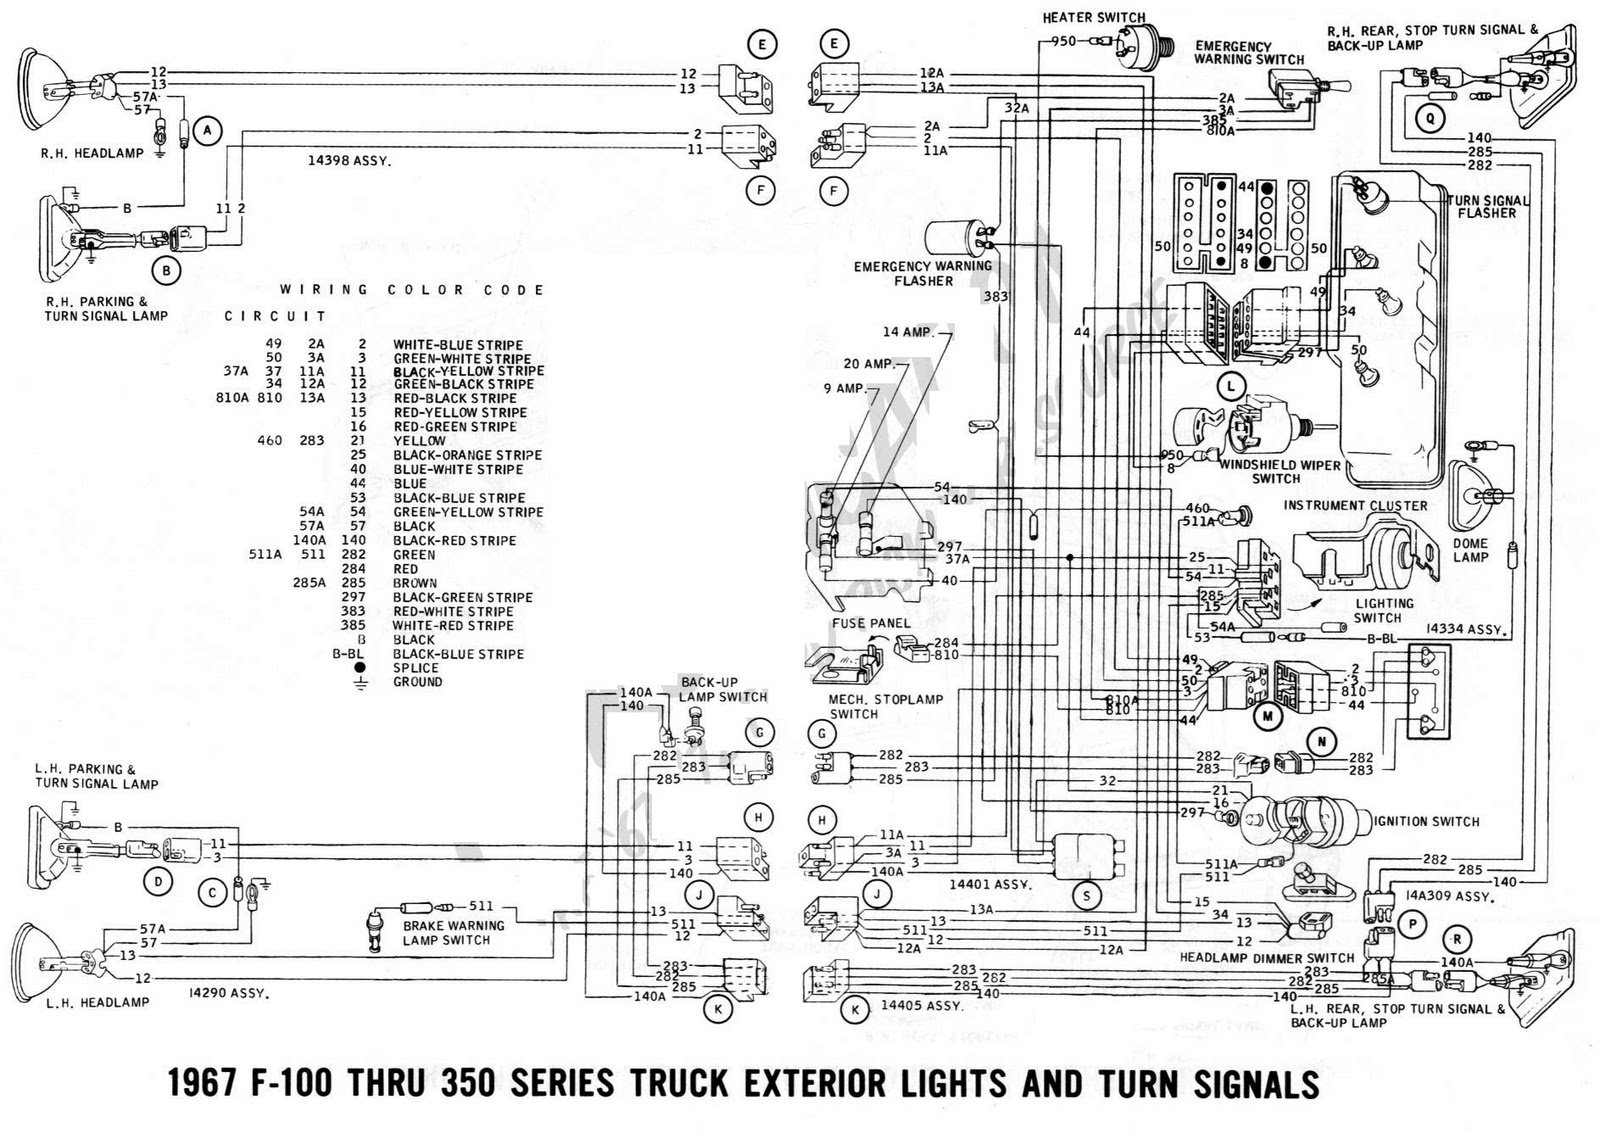 Ford F 100 350 Complete Exterior Lights And Turn Signals Wiring Diagram